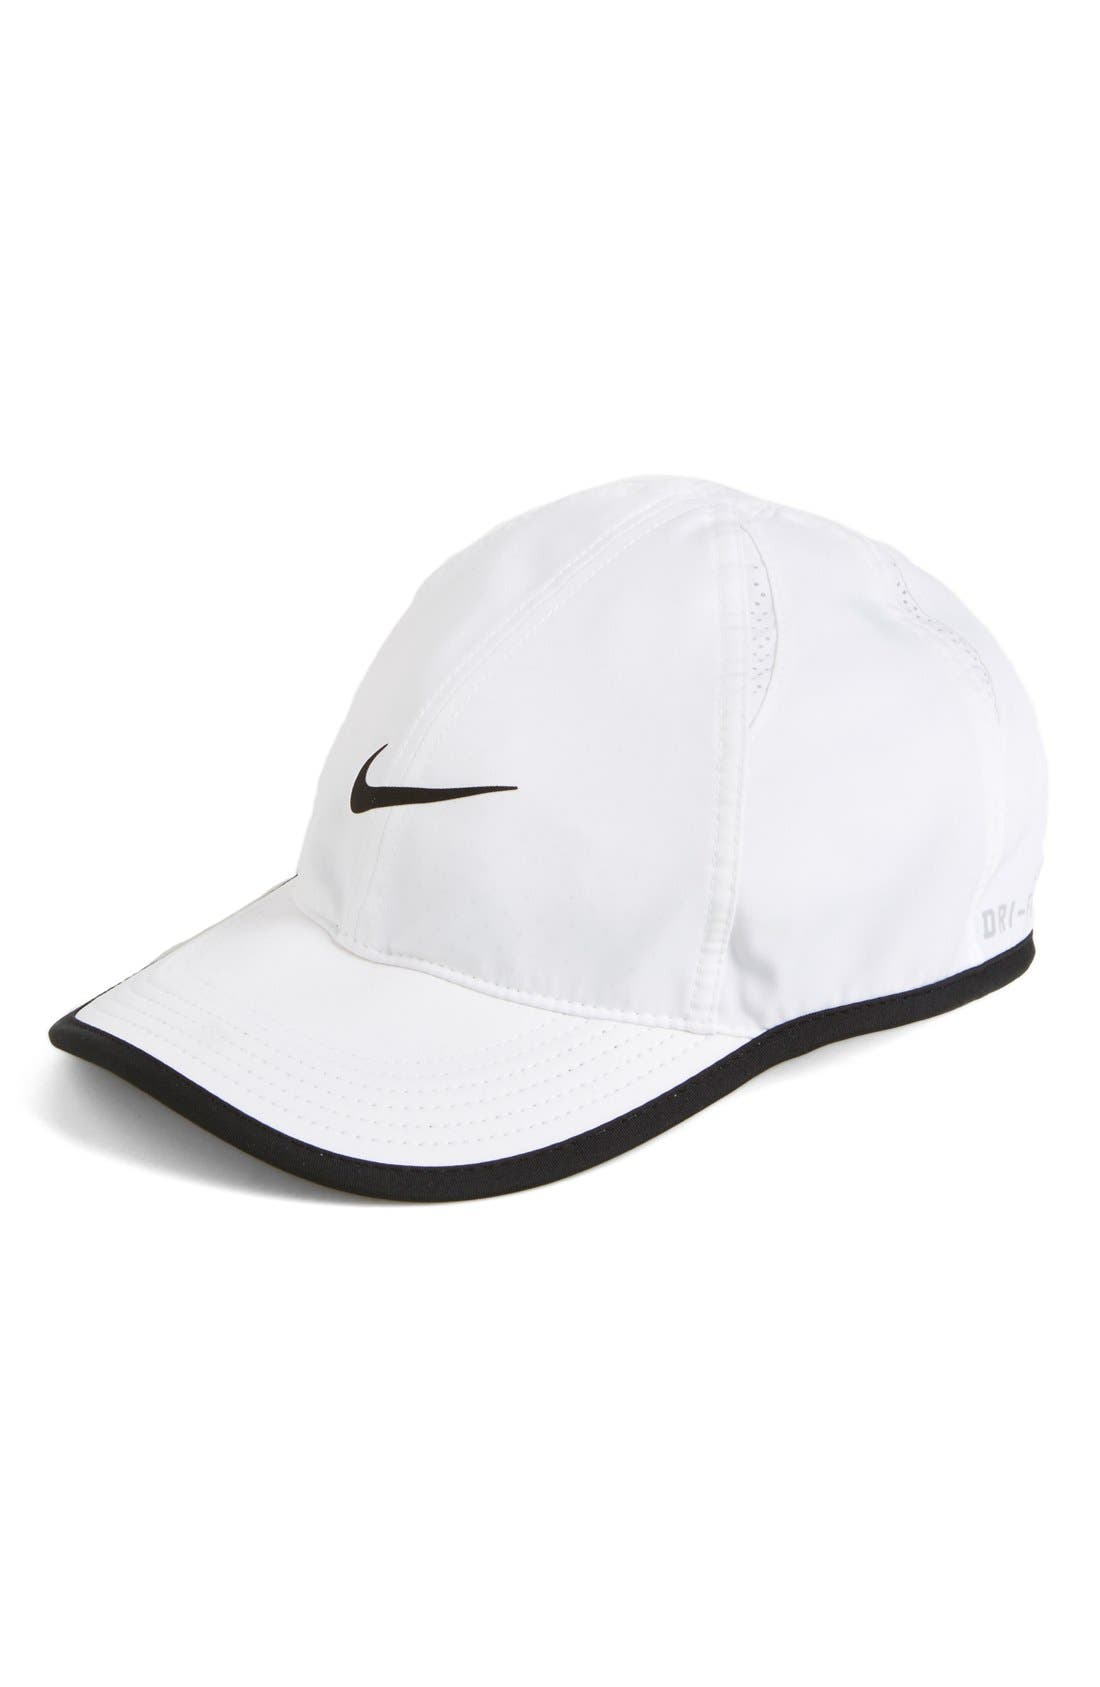 30b18b78 ... real nike feather light dri fit cap nordstrom e2a95 ca4f2